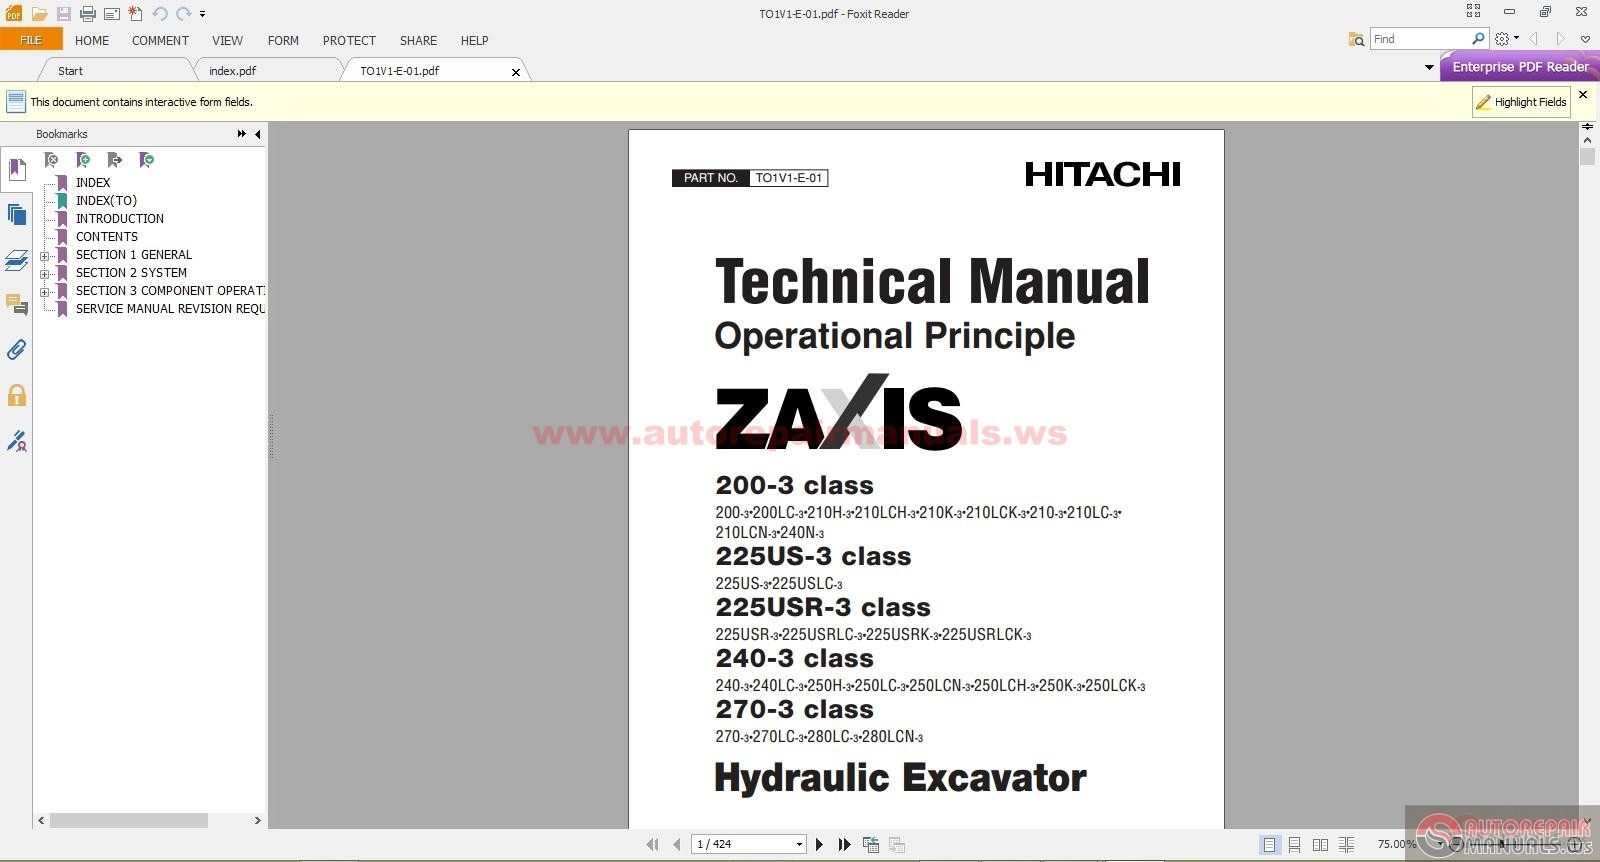 Hitachi Manual Pdf 700cc And Roadster Grundig Stereo Wiring Array Service Download Rh Milesfiles De